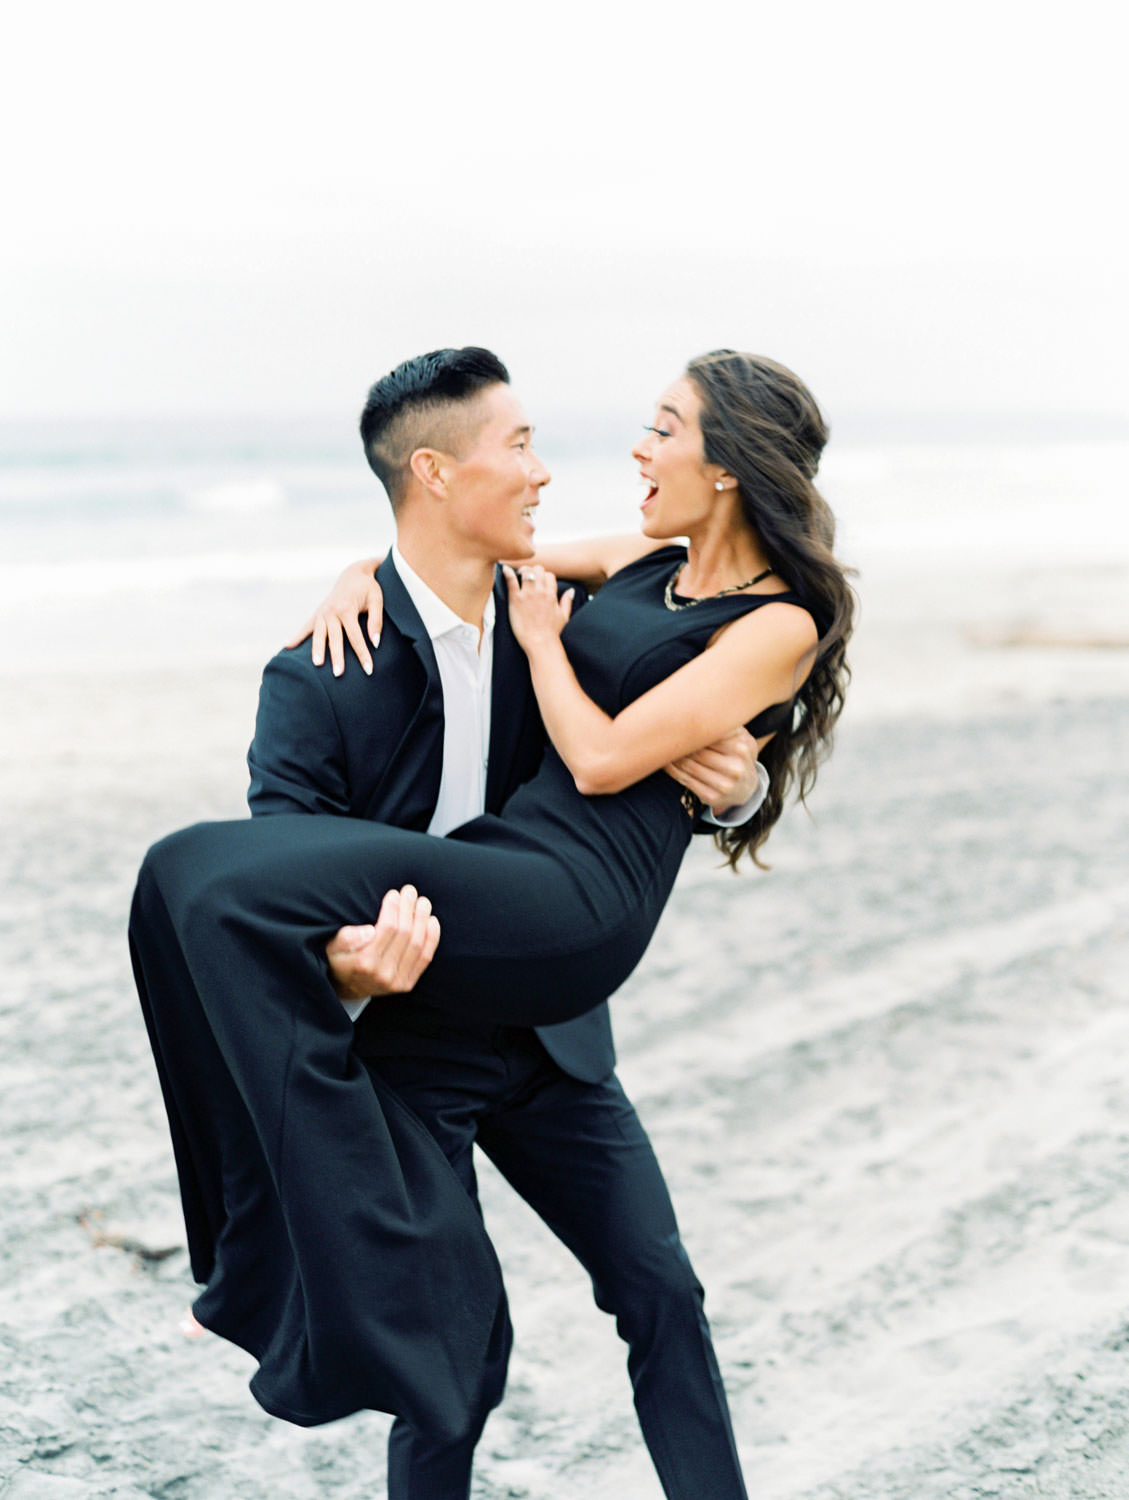 Groom holding the bride. Engagement photo outfit ideas with a formal black suit and black dress. Torrey Pines beach photos on film by Cavin Elizabeth Photography.